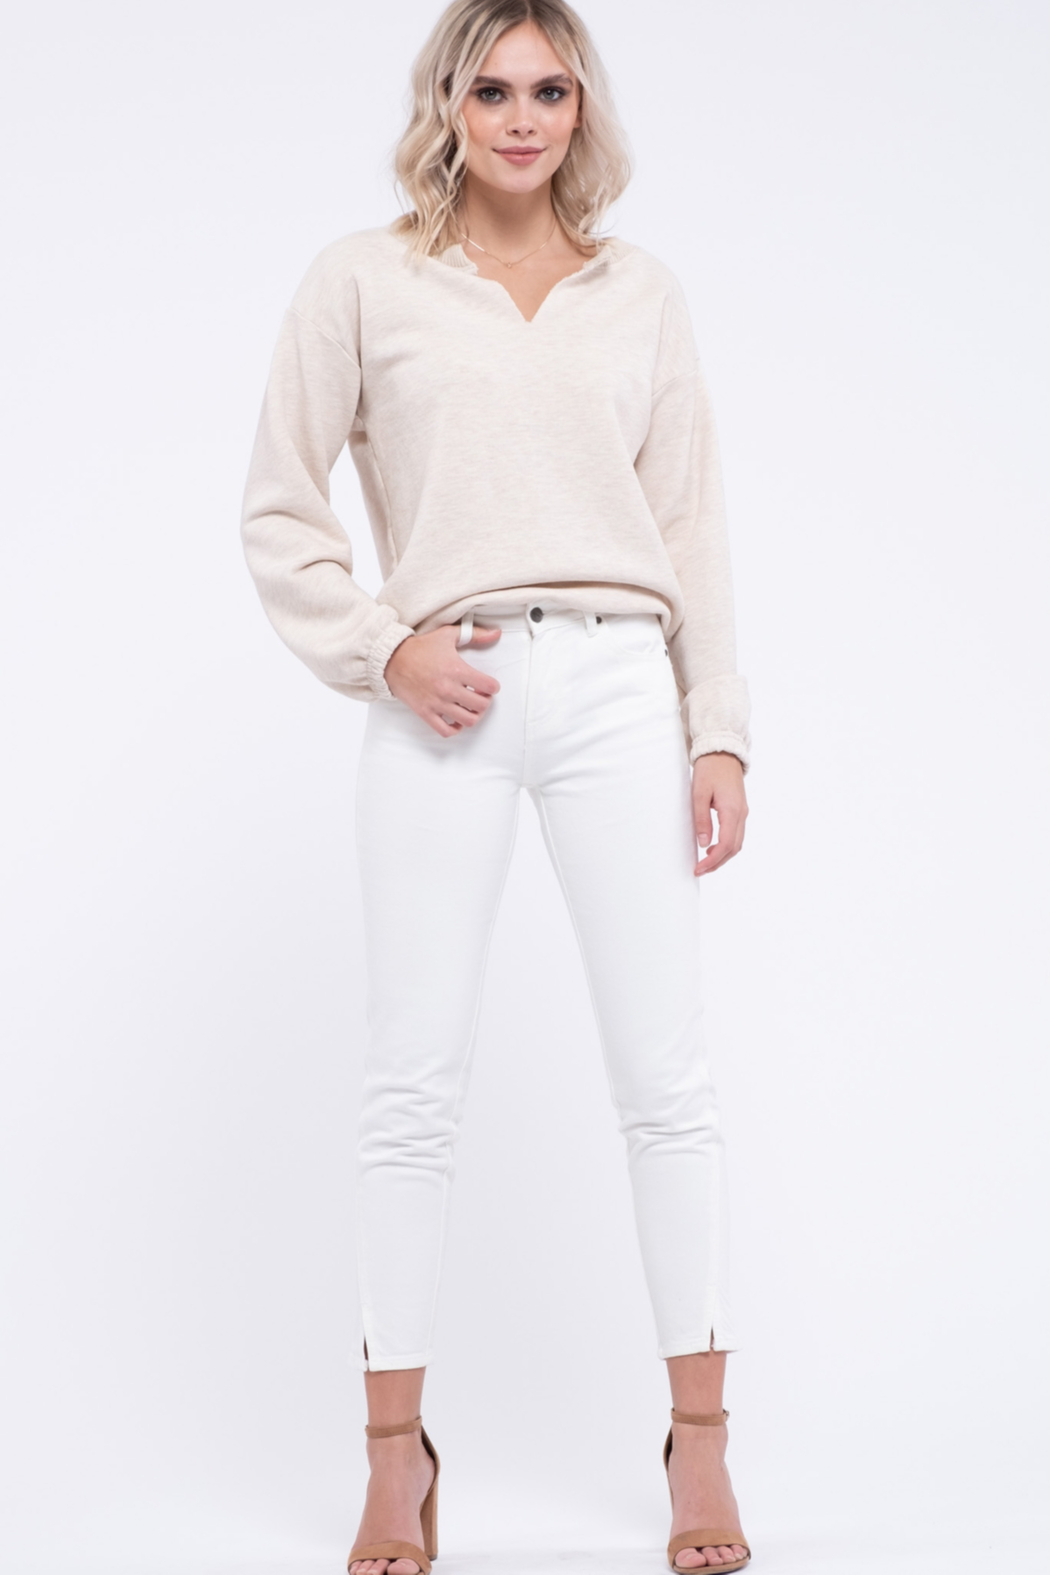 EVIDNT Off-White Cotton Low Rise Twisted Side Seam Skinny Jeans - Main Image